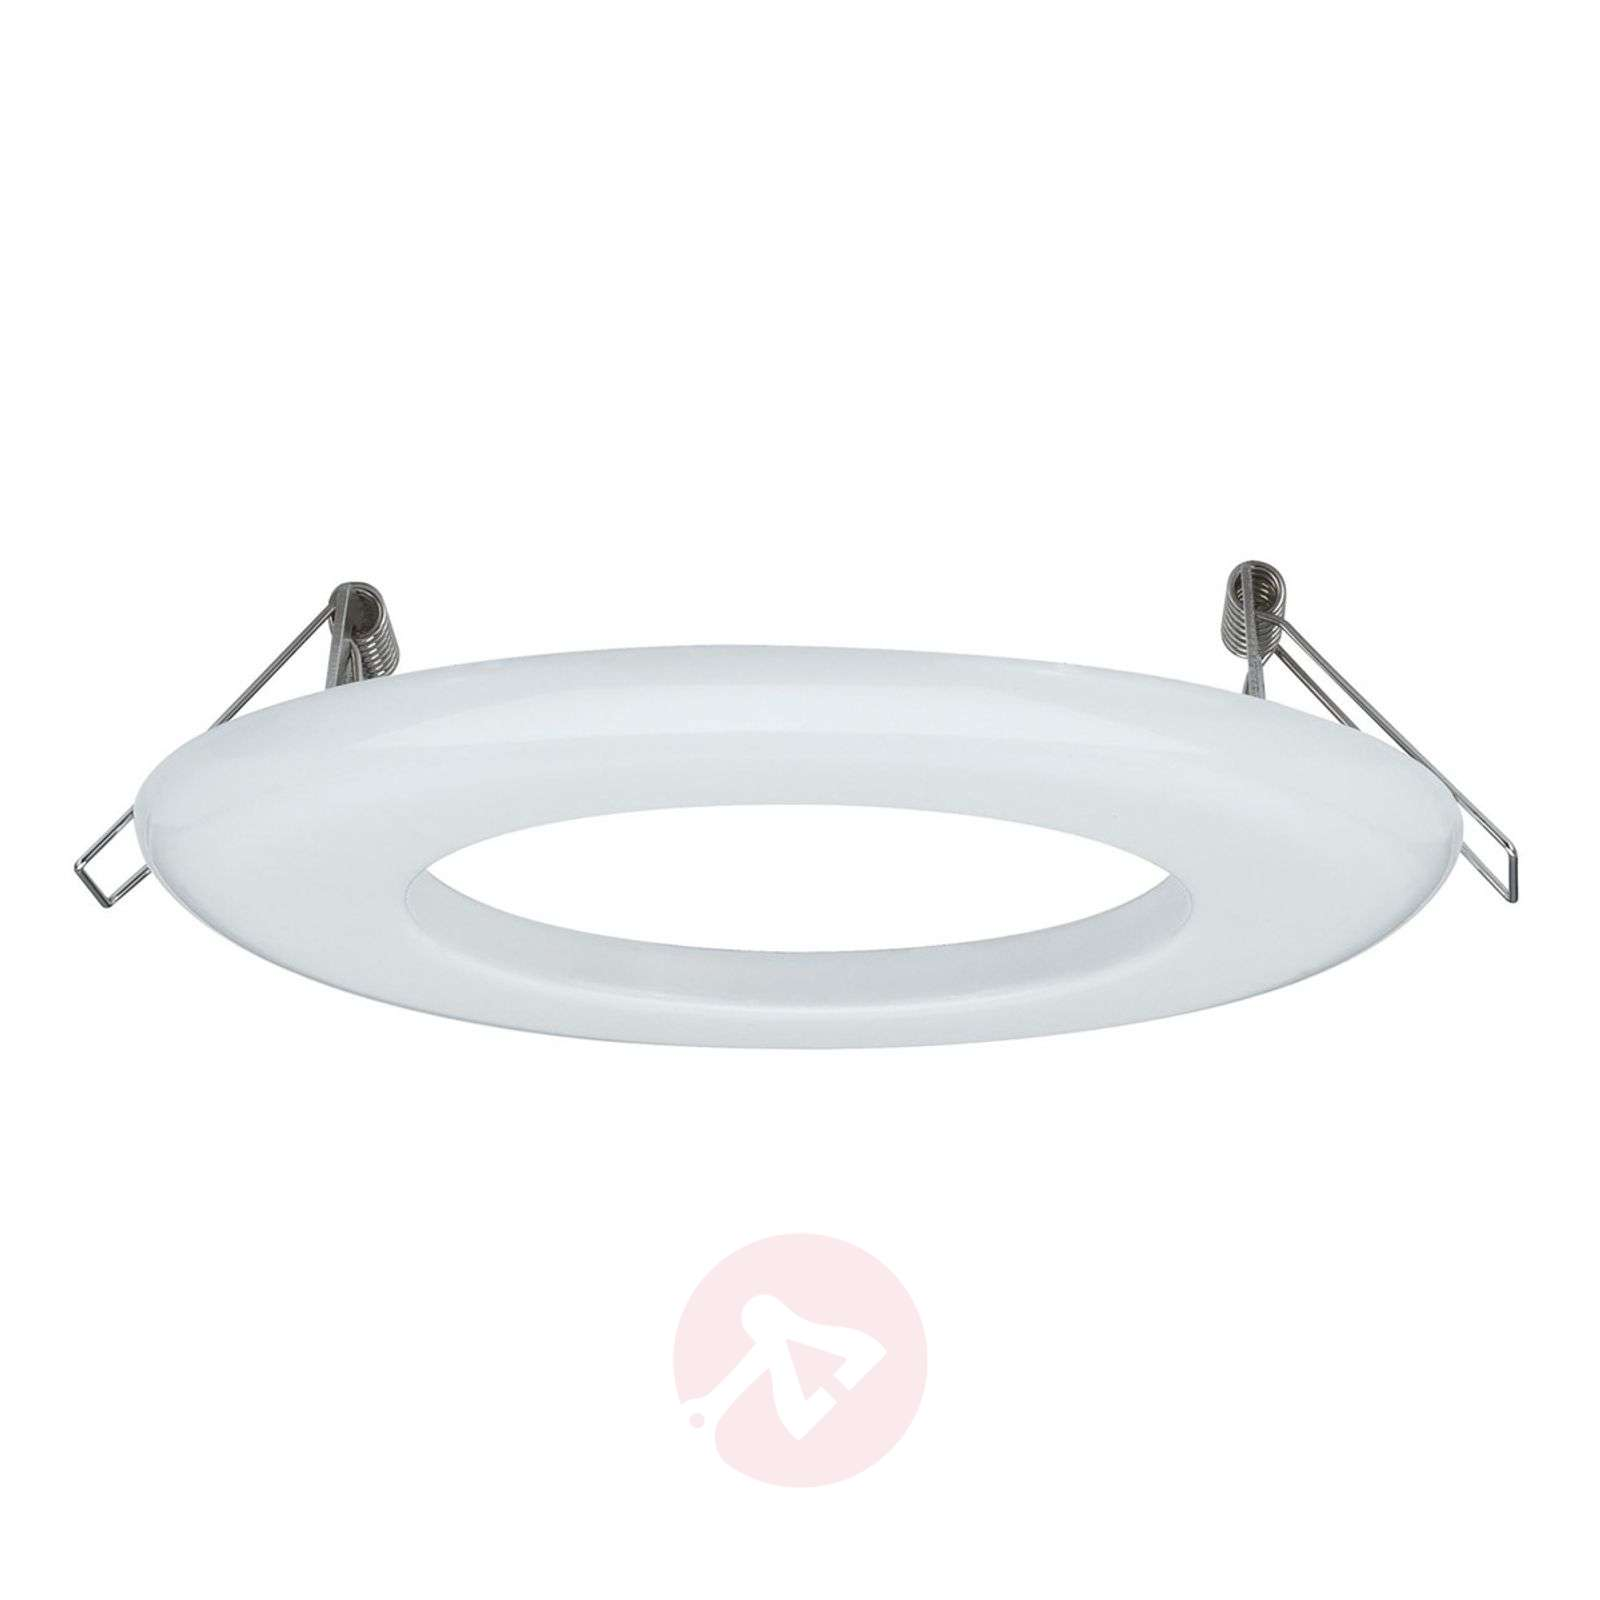 Downlight-adapter JERRY-7600435X-01